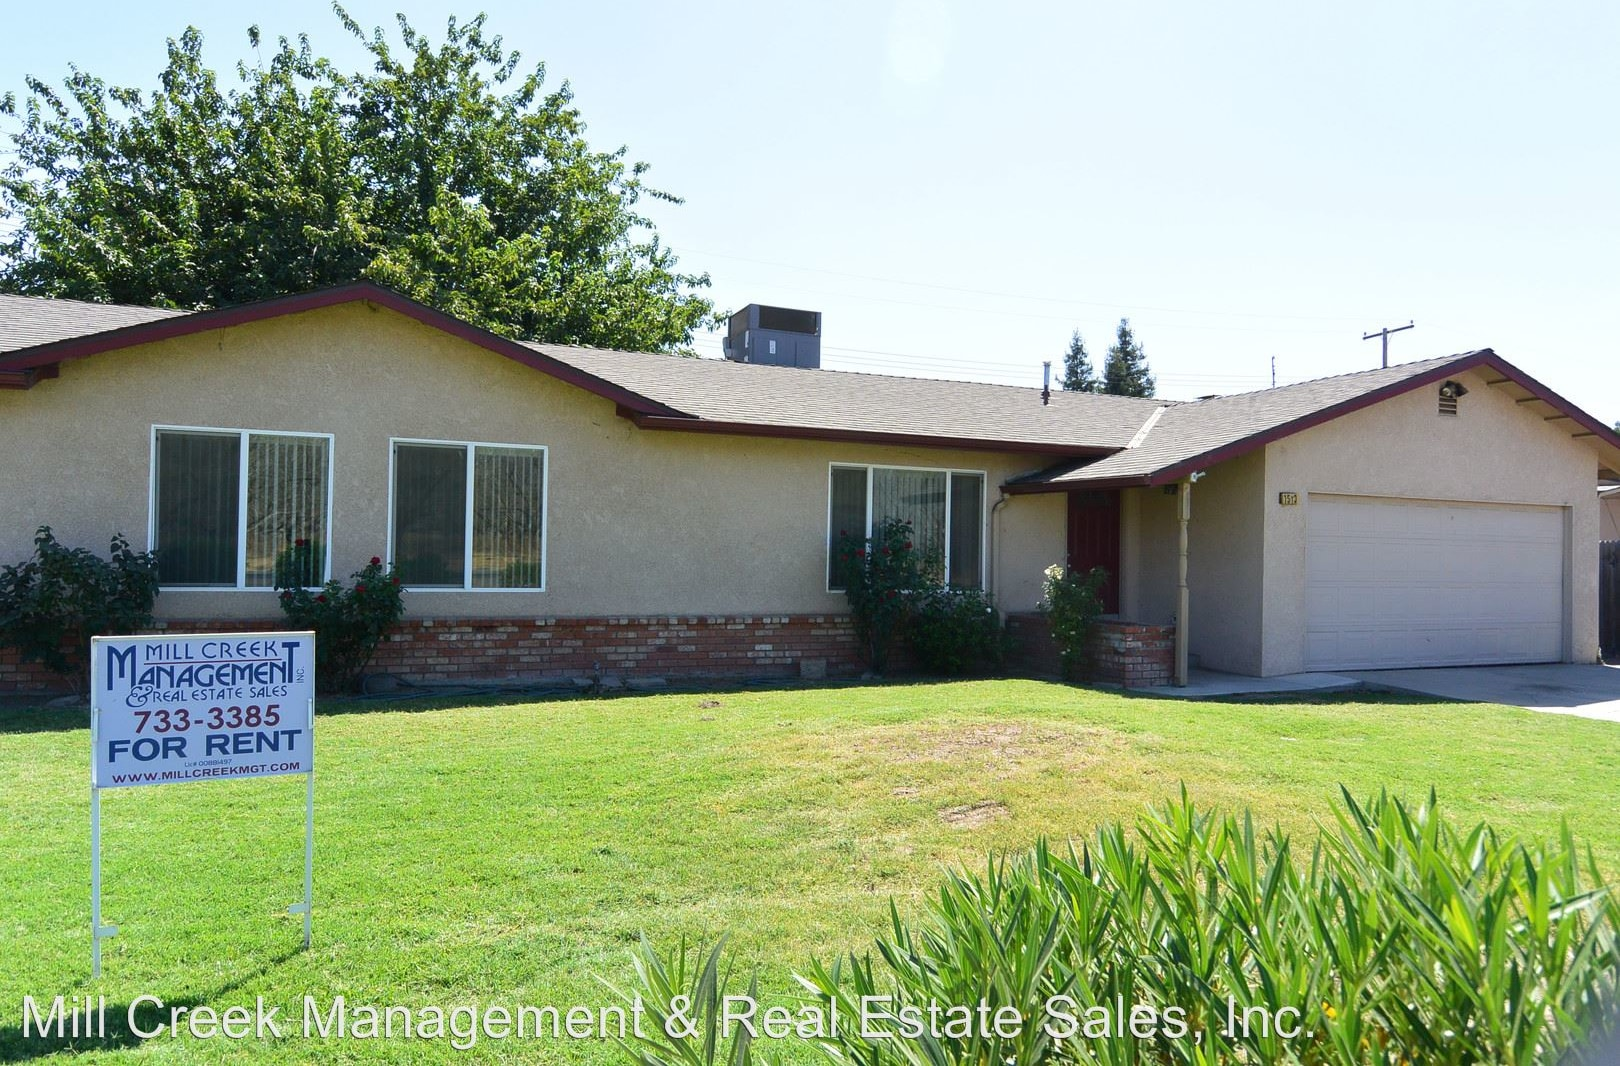 20 Best Apartments For Rent In Visalia, CA (with pictures)!